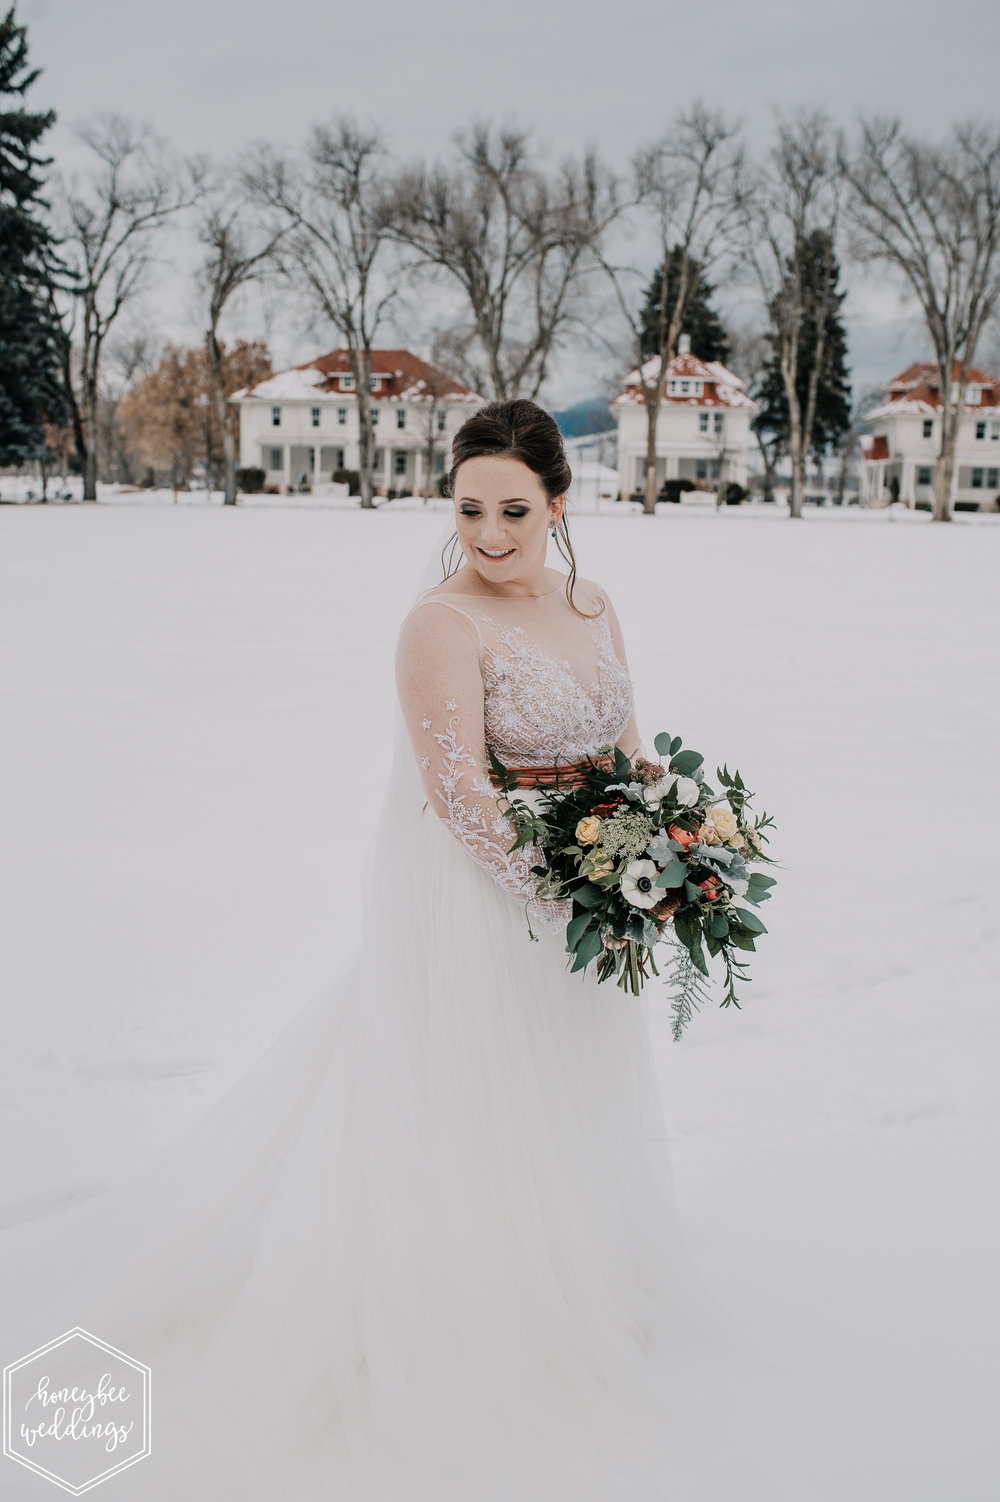 0168Montana Wedding Photographer_Montana winter wedding_Wedding at Fort Missoula_Meri & Carter_January 19, 2018-363.jpg